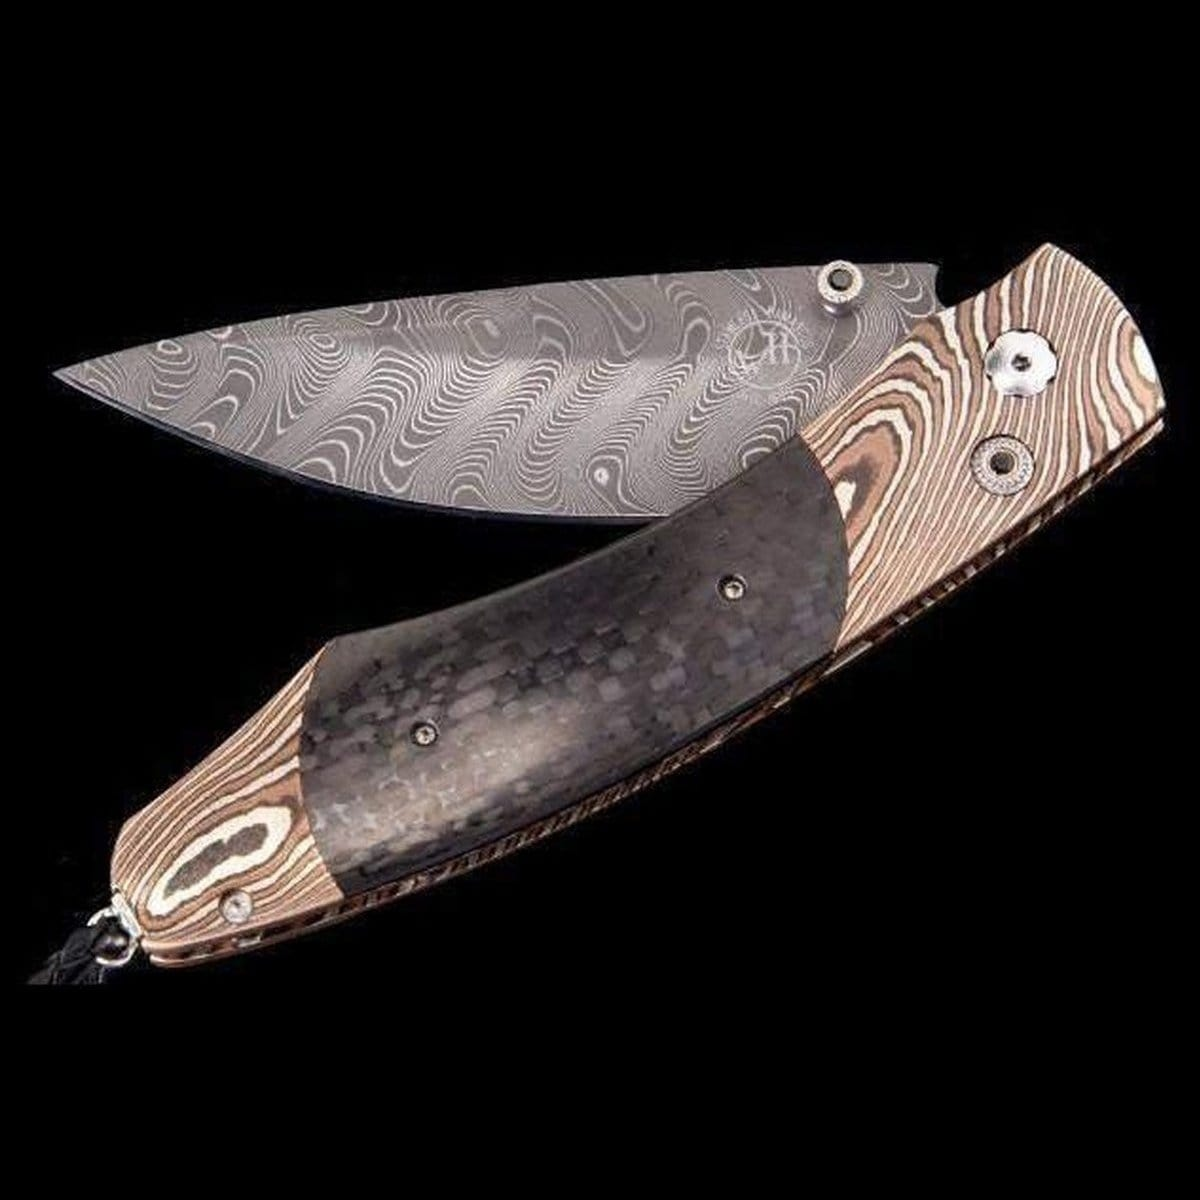 Spearpoint Shale Limited Edition Knife - B12 SHALE-William Henry-Renee Taylor Gallery